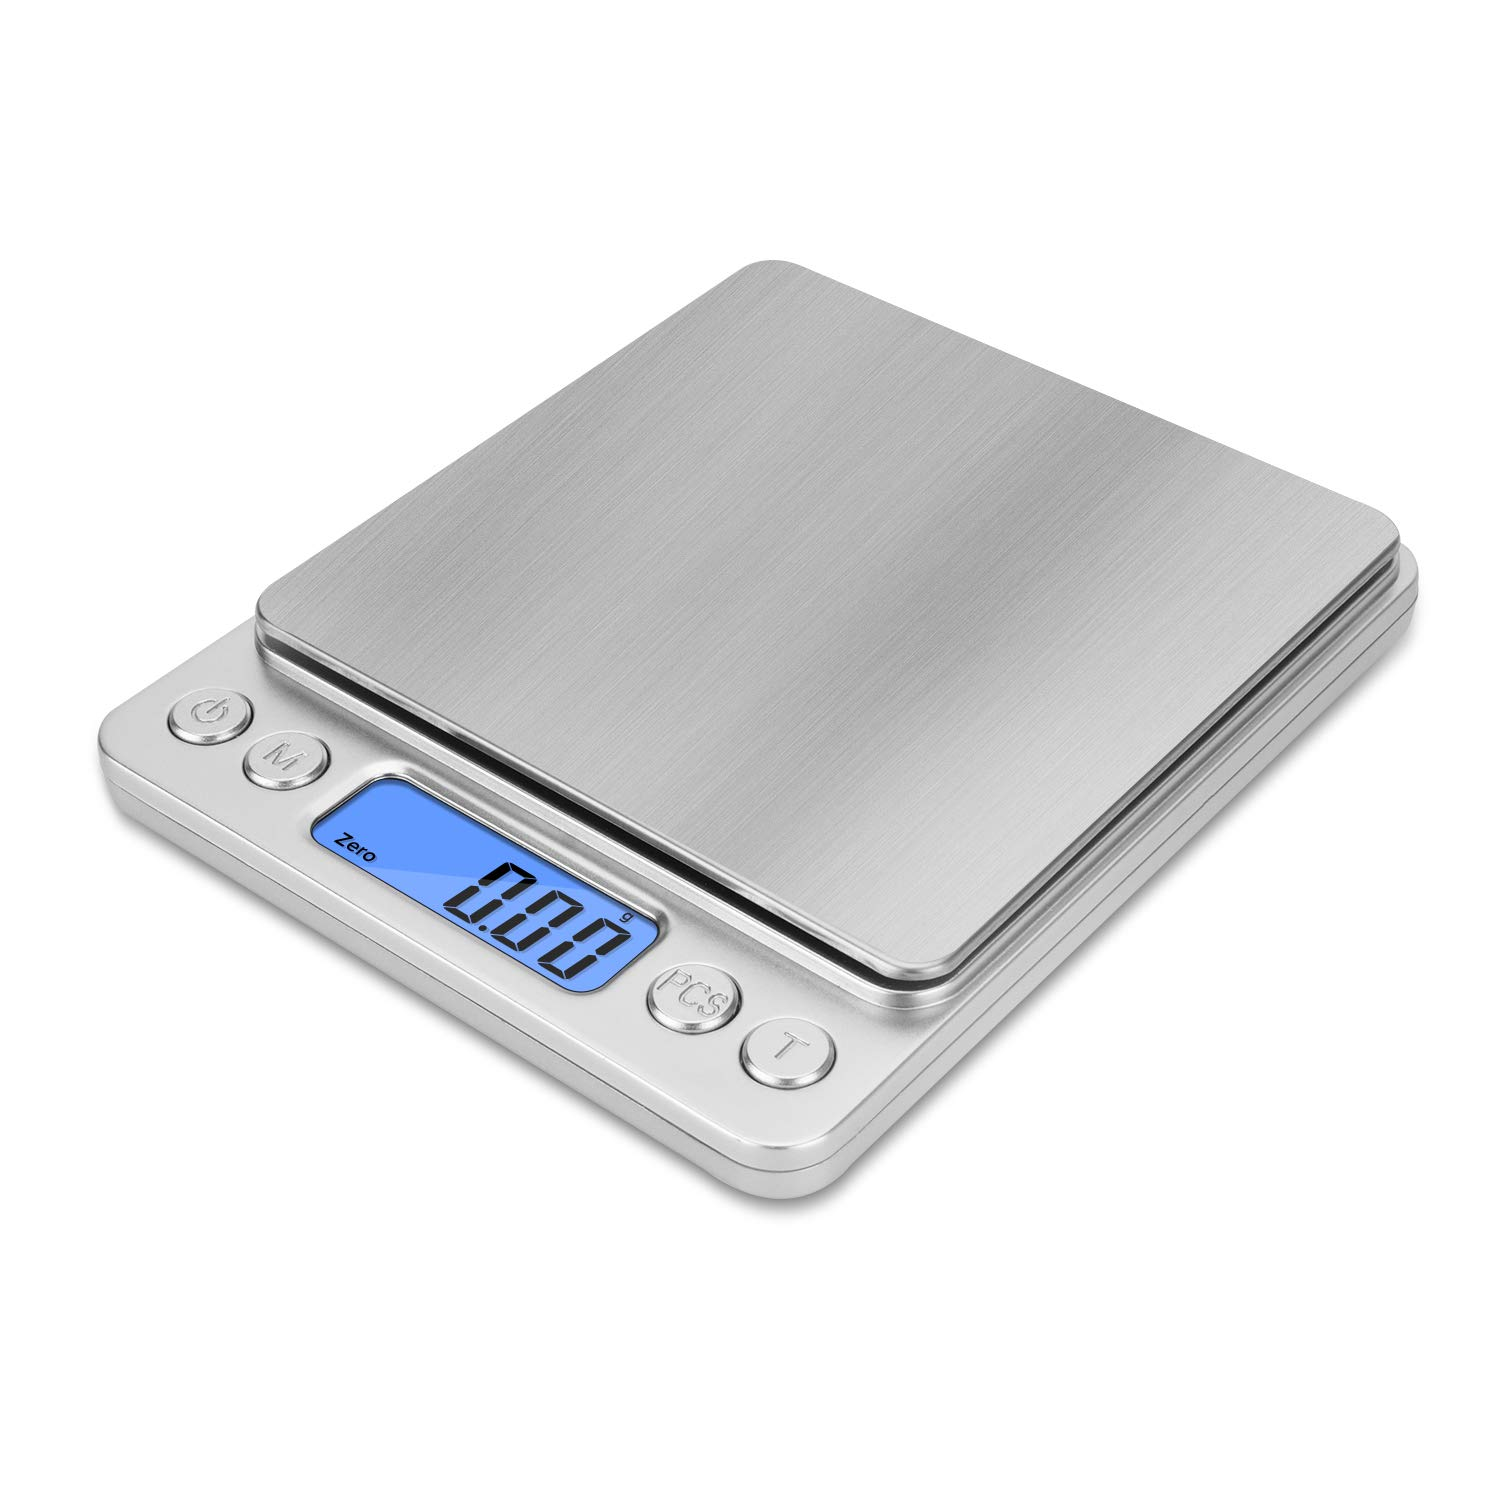 NEXT-SHINE Digital Kitchen Scale 500 x 0.01 Gram, Pocket Size with PCS Tare Switch Weighing Units Function, Stainless Steel Platform P225